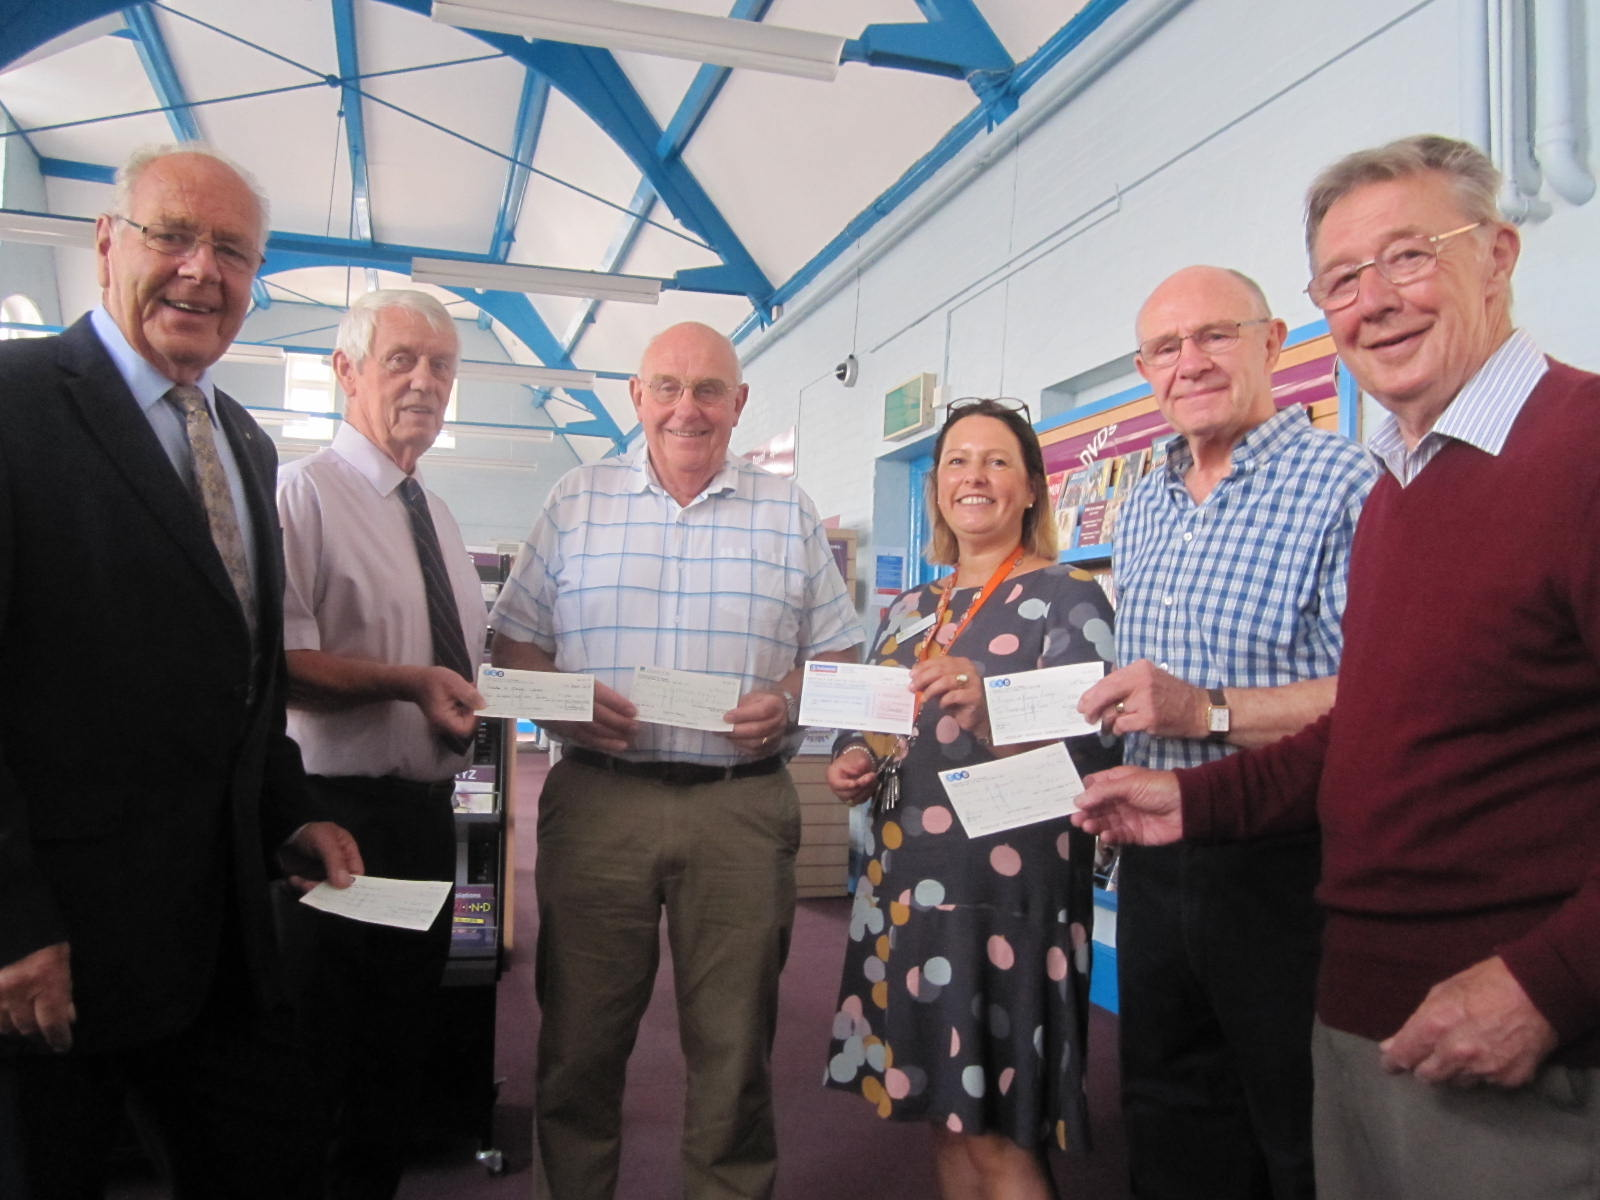 Exmouth Freemasons, donation to Friends of Exmouth Library